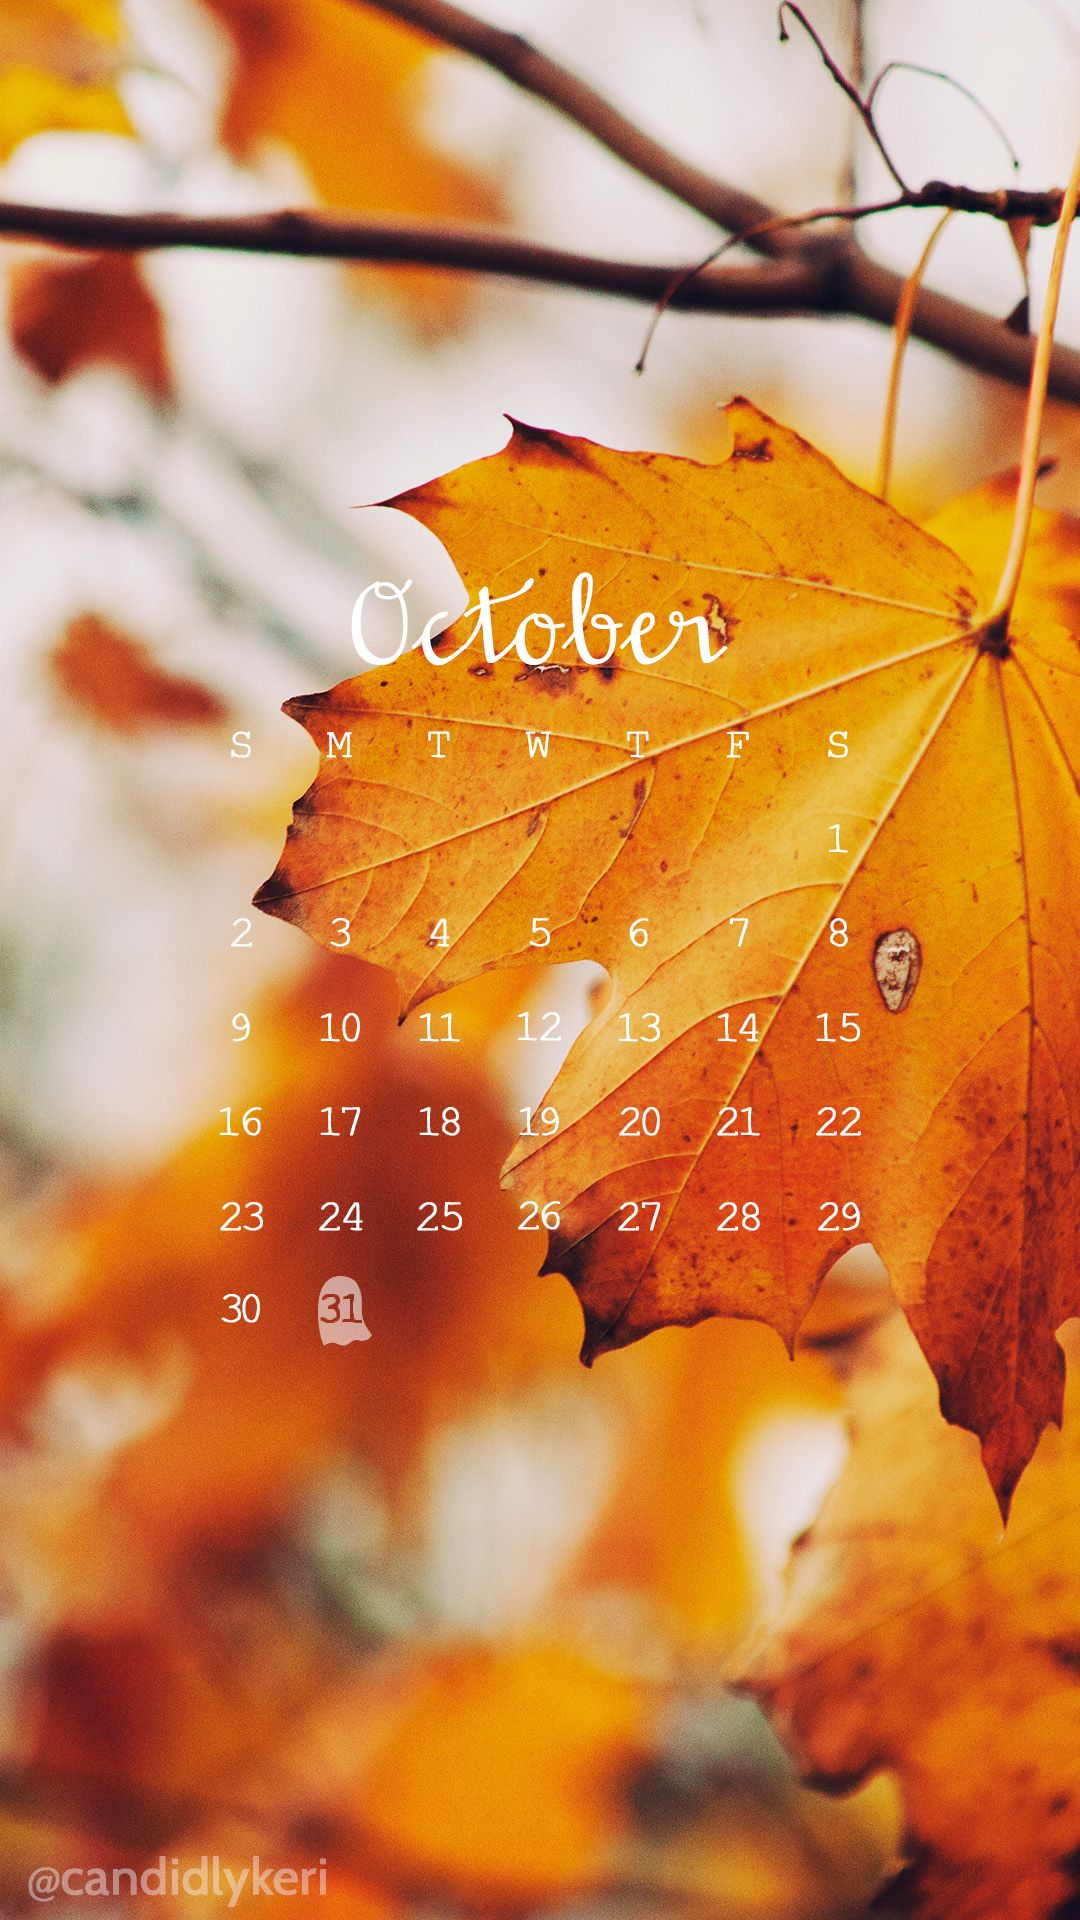 Fall Leaves Photo October Calendar 2016 Wallpaper You Can Download For Free On The Blog For Any Devic October Wallpaper Fall Wallpaper Fall Backgrounds Iphone